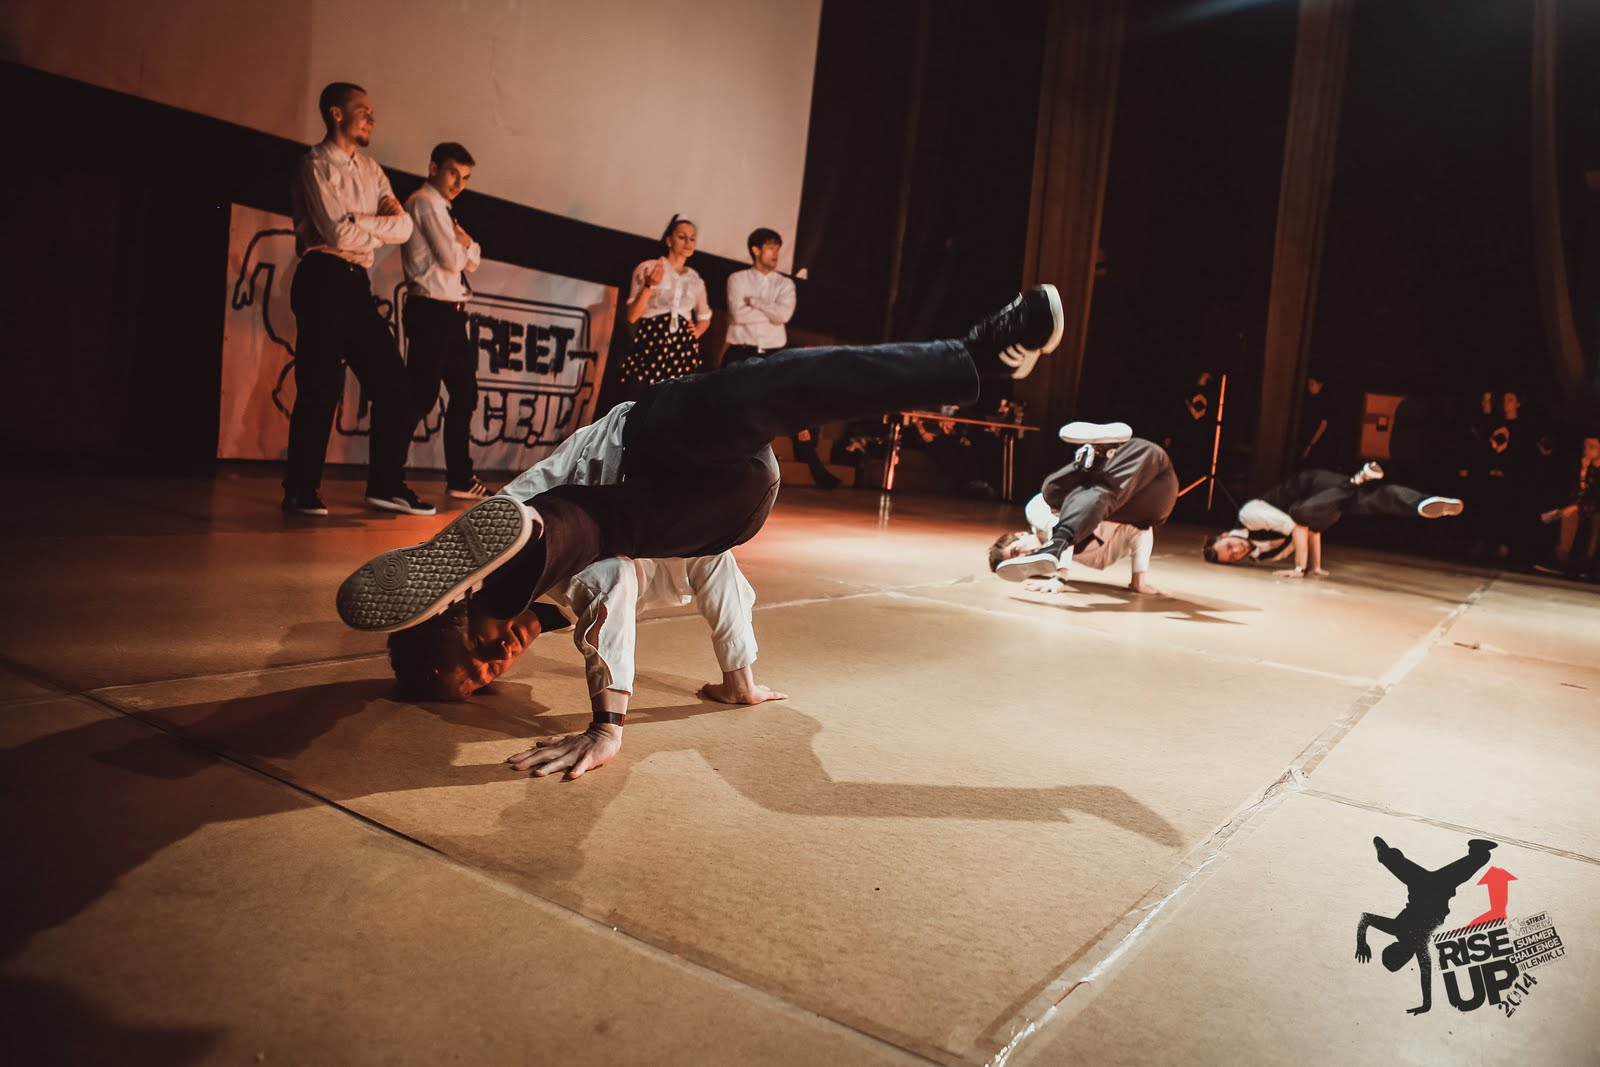 SKILLZ at RISEUP 2014 - _MG_7984.jpg